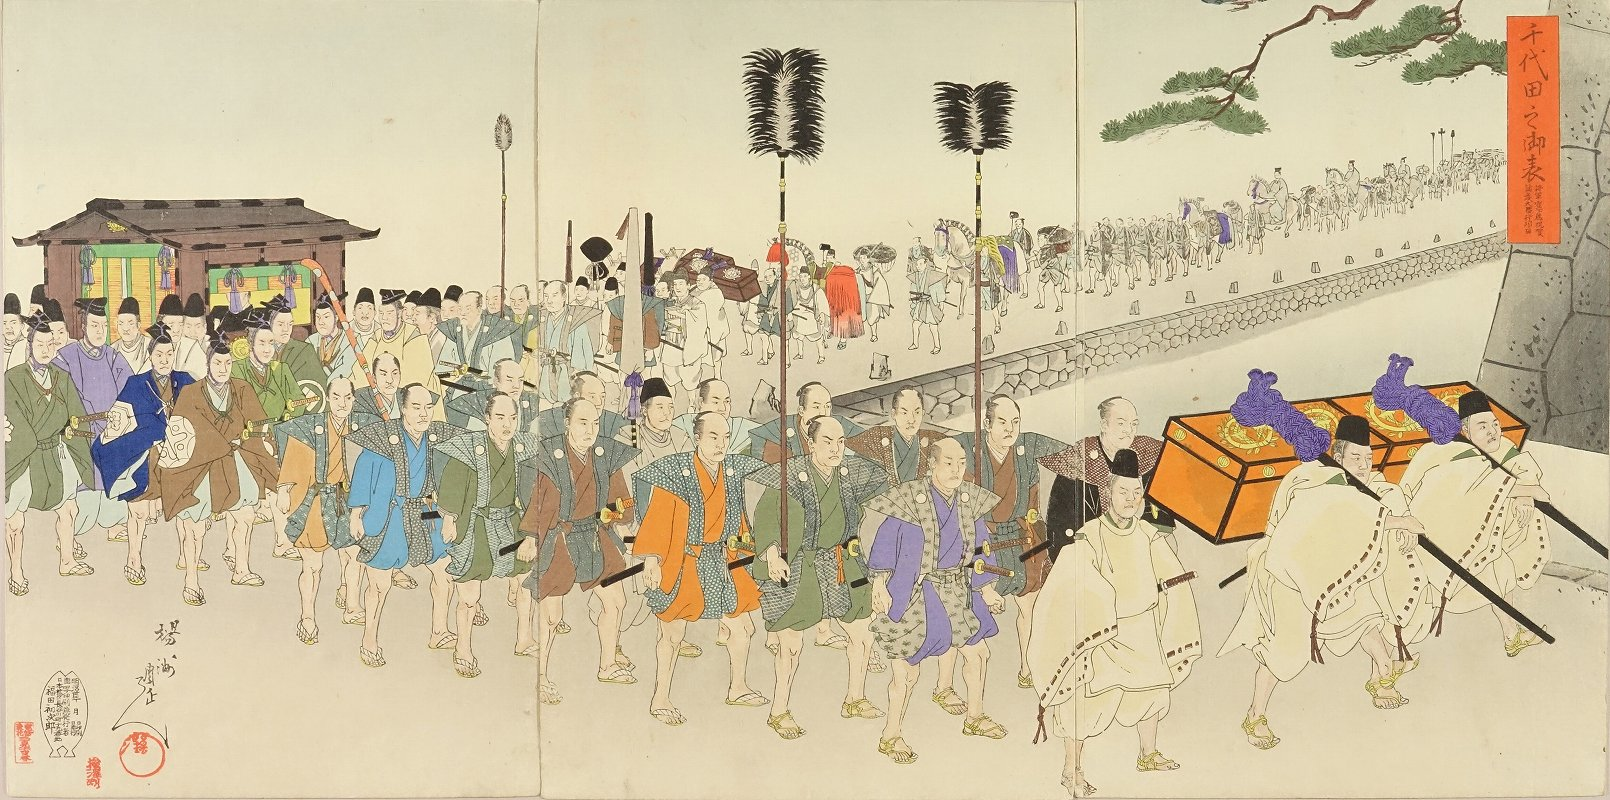 CHIKANOBU Procession at Shogun's inauguration, from <i>Chiyoda no on'omote</i> (Scenes of Edo Castle), triptych